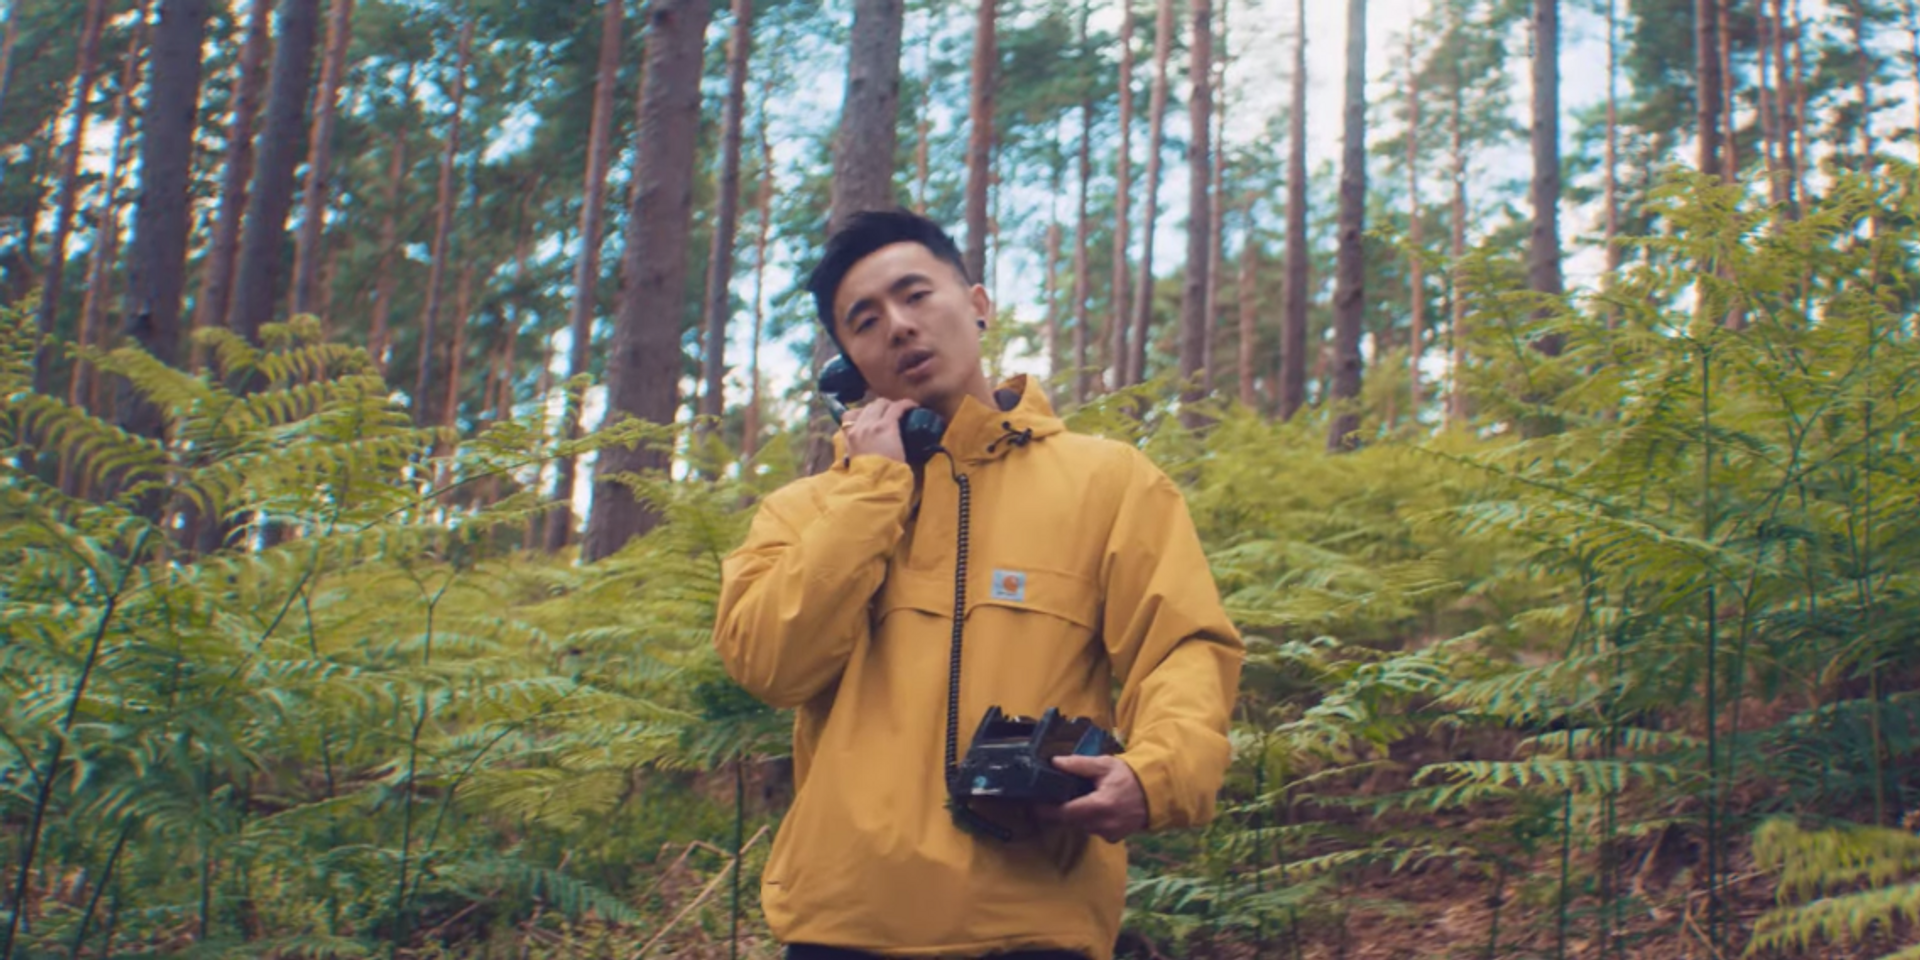 Lui Peng releases enchanting visuals for 'Just a Phone Call Away' – watch